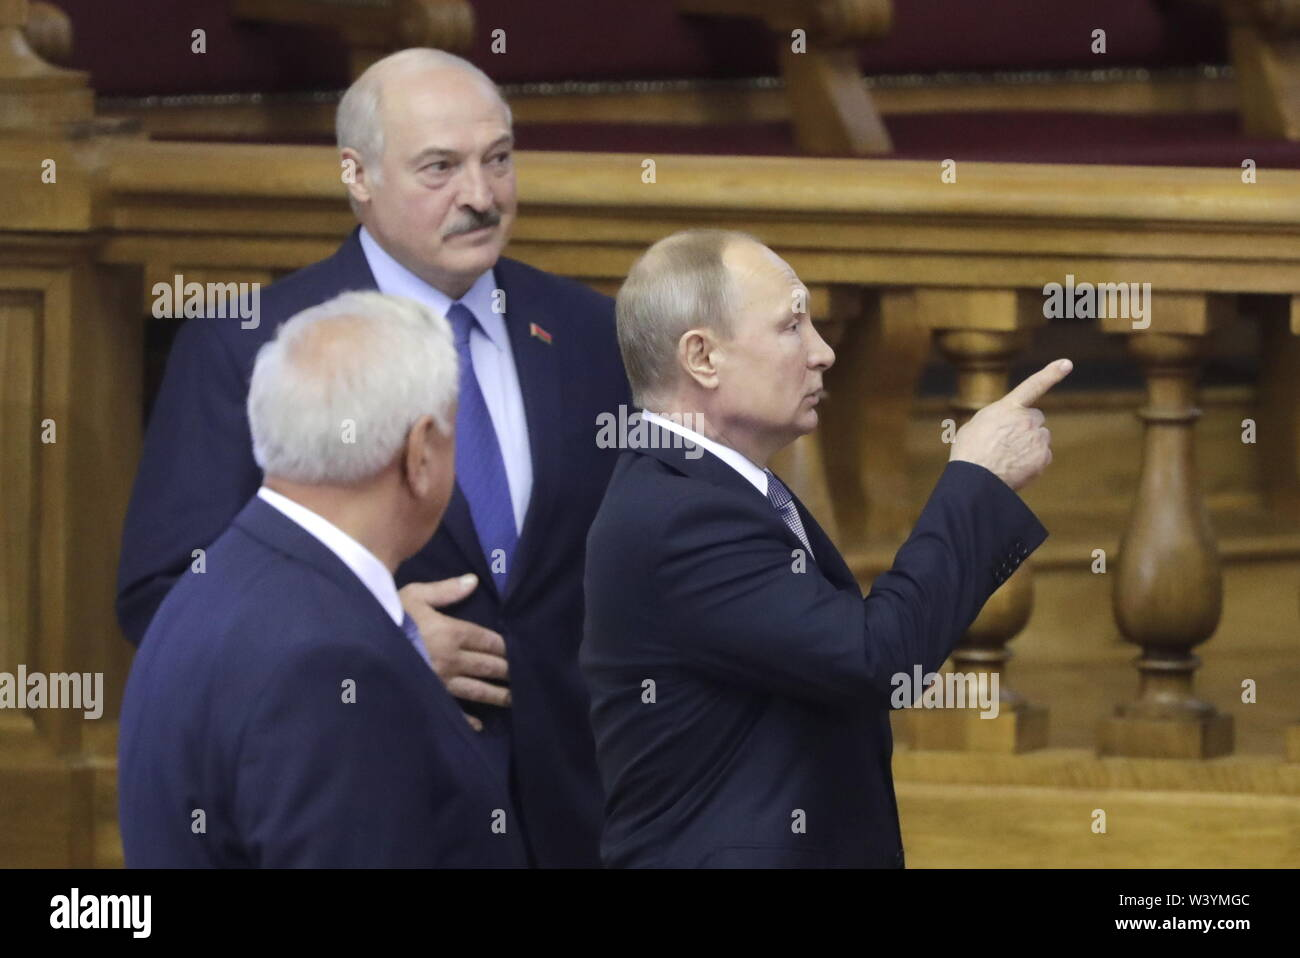 St Petersburg, Russia. 18th July, 2019. ST PETERSBURG, RUSSIA - JULY 18, 2019: Belarus' President Alexander Lukashenko and Russia's President Vladimir Putin (L-R back) attend a plenary meeting at the 6th Belarus-Russia Forum of Regions, Tauride Palace. Mikhail Metzel/TASS Credit: ITAR-TASS News Agency/Alamy Live News - Stock Image